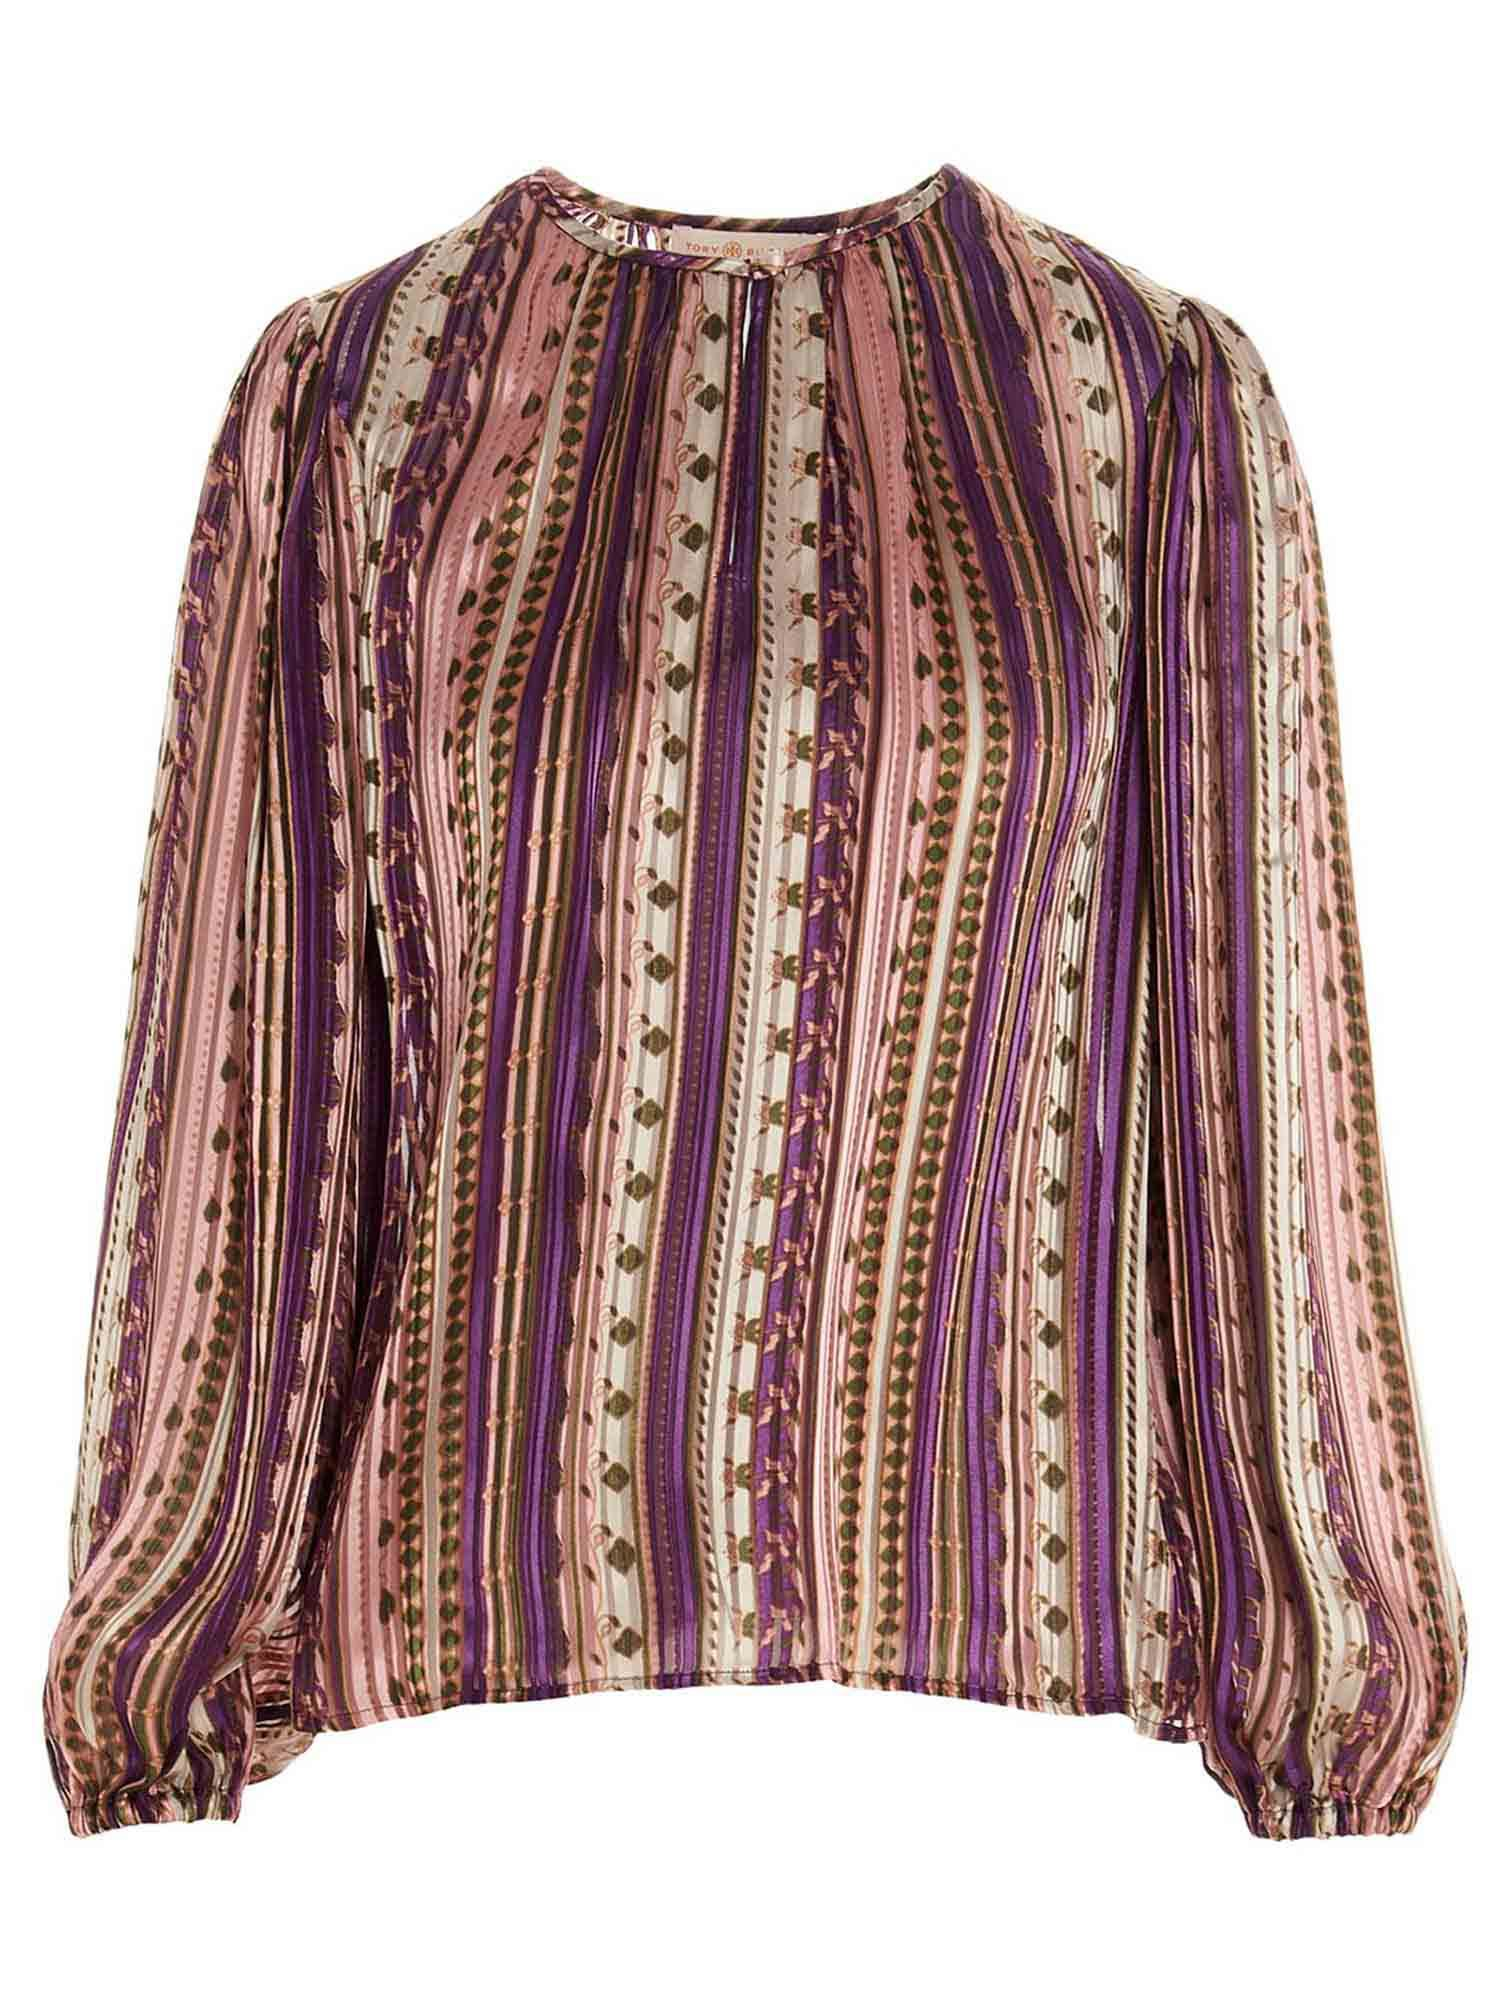 Tory Burch MULTICOLOR PATTERNED BLOUSE